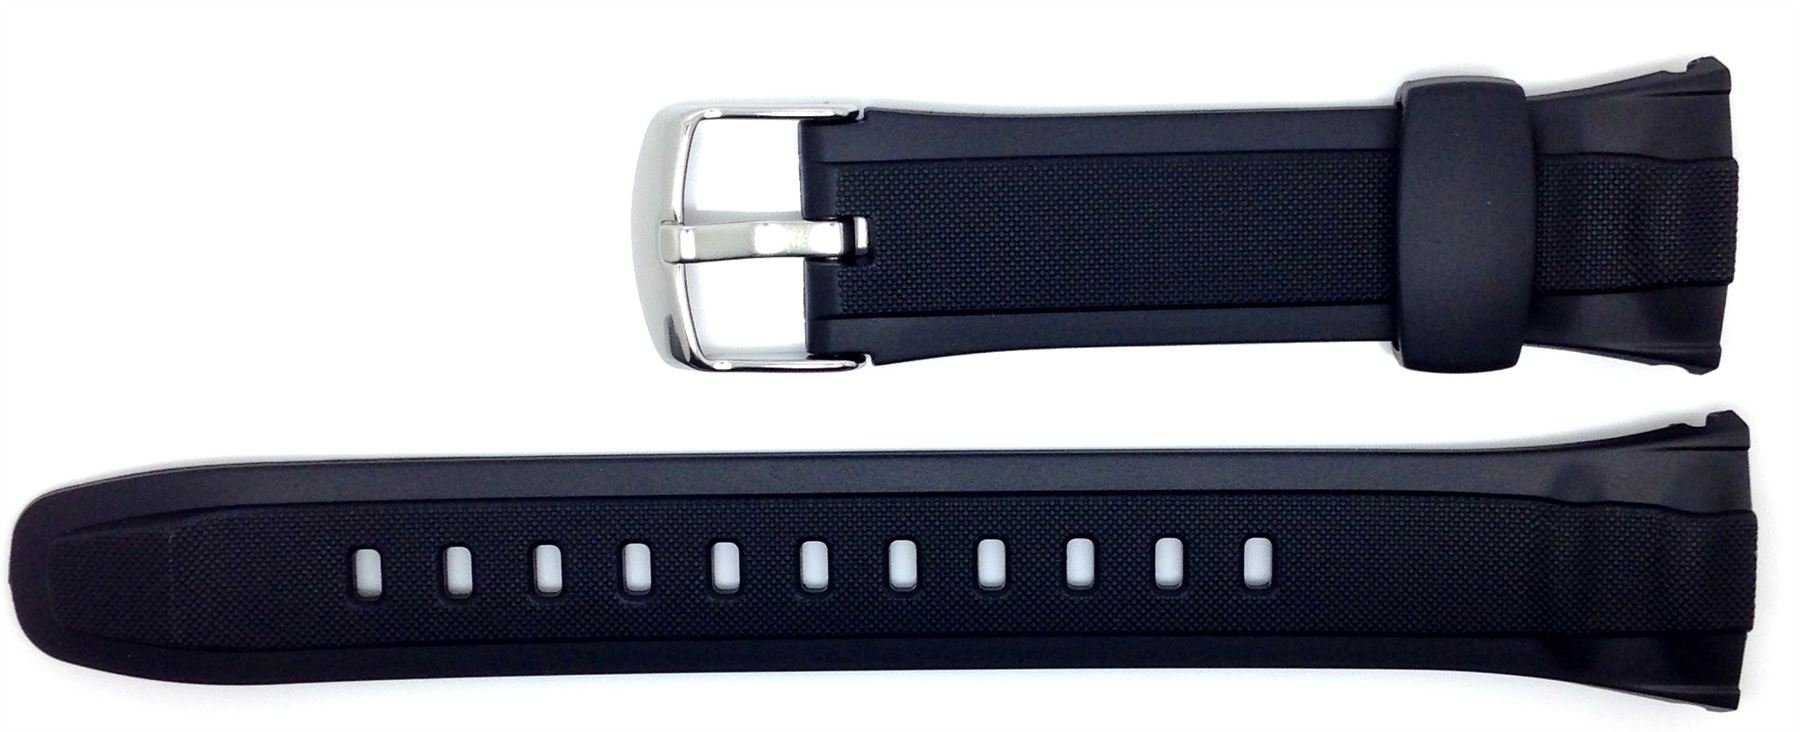 Genuine Casio Replacement Watch Strap 10152407 for Casio Watch WVA-620J-9AD + Other models